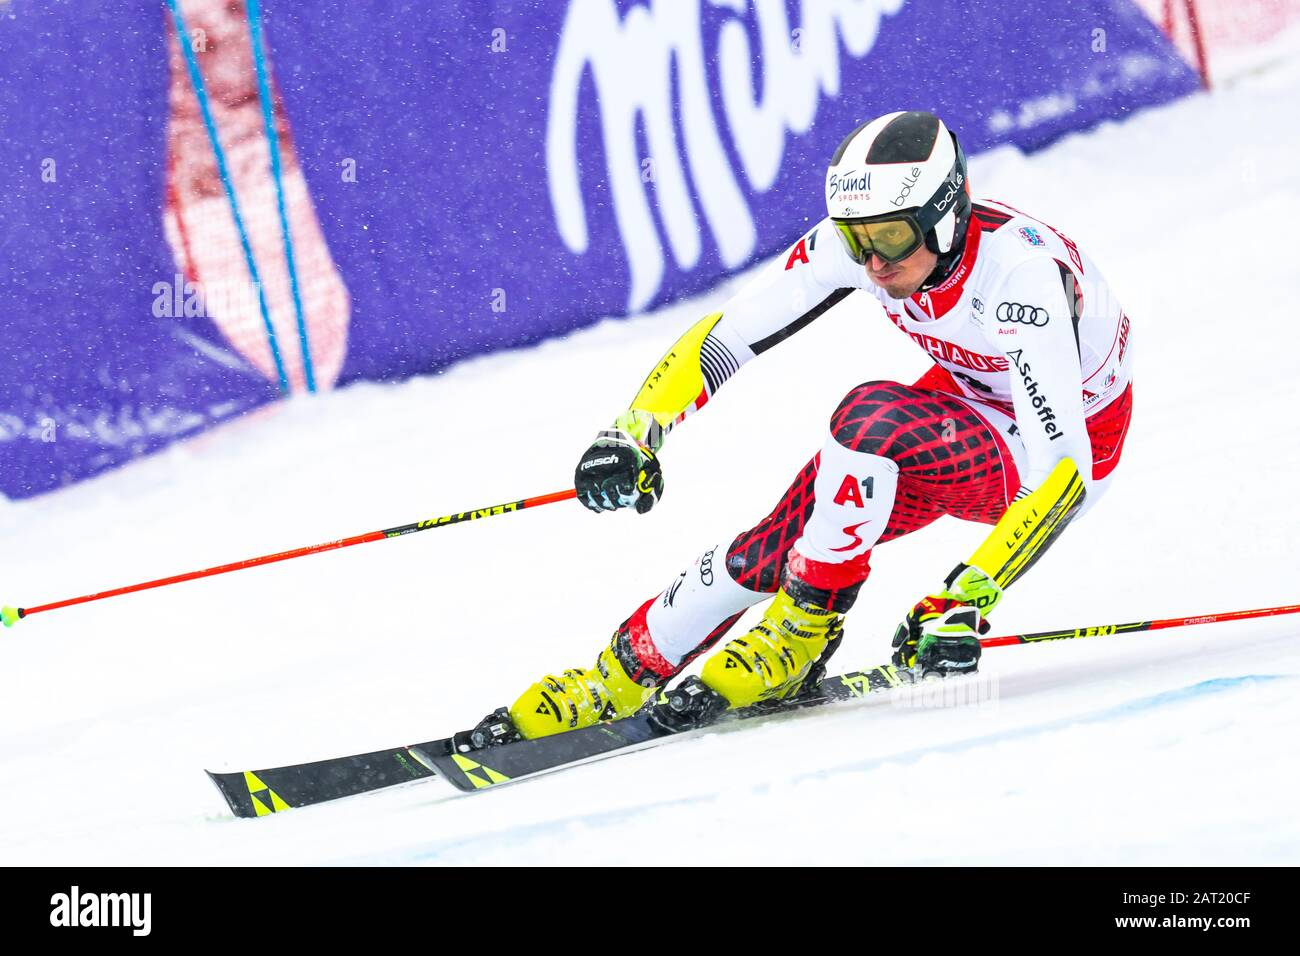 Alta Badia, Italy 22 December 2019.  BRENNSTEINER Stefan (Aut) competing in the Audi Fis Alpine Skiing World Cup Men's Giant Slalom on the Gran Risa C Stock Photo